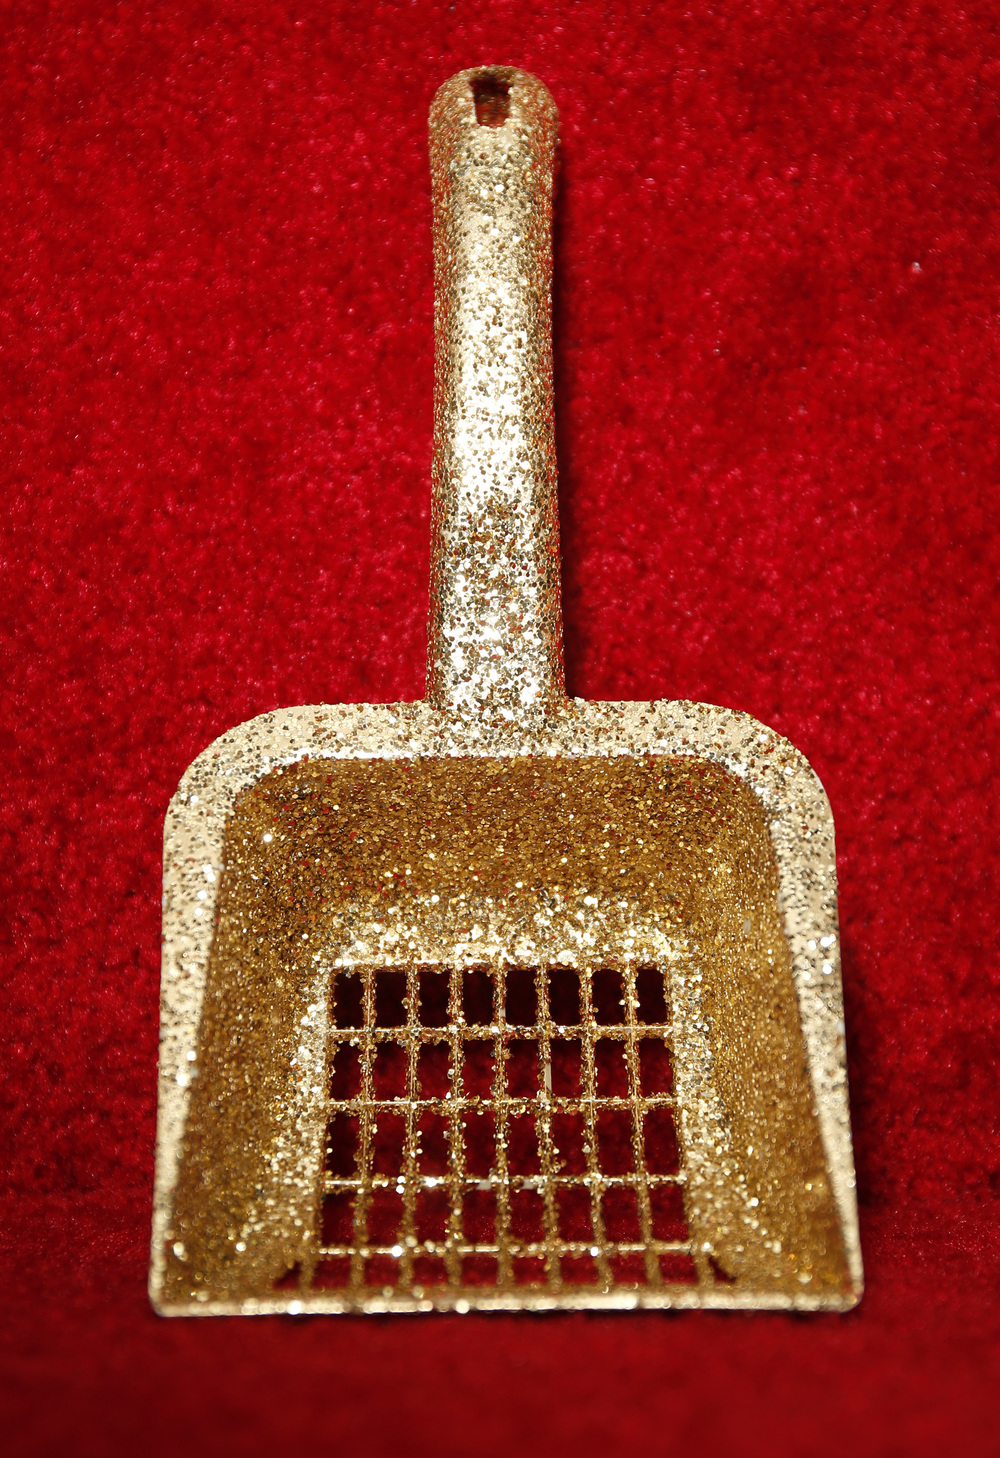 Golden Litter Scoop on Red Carpet copy.jpg